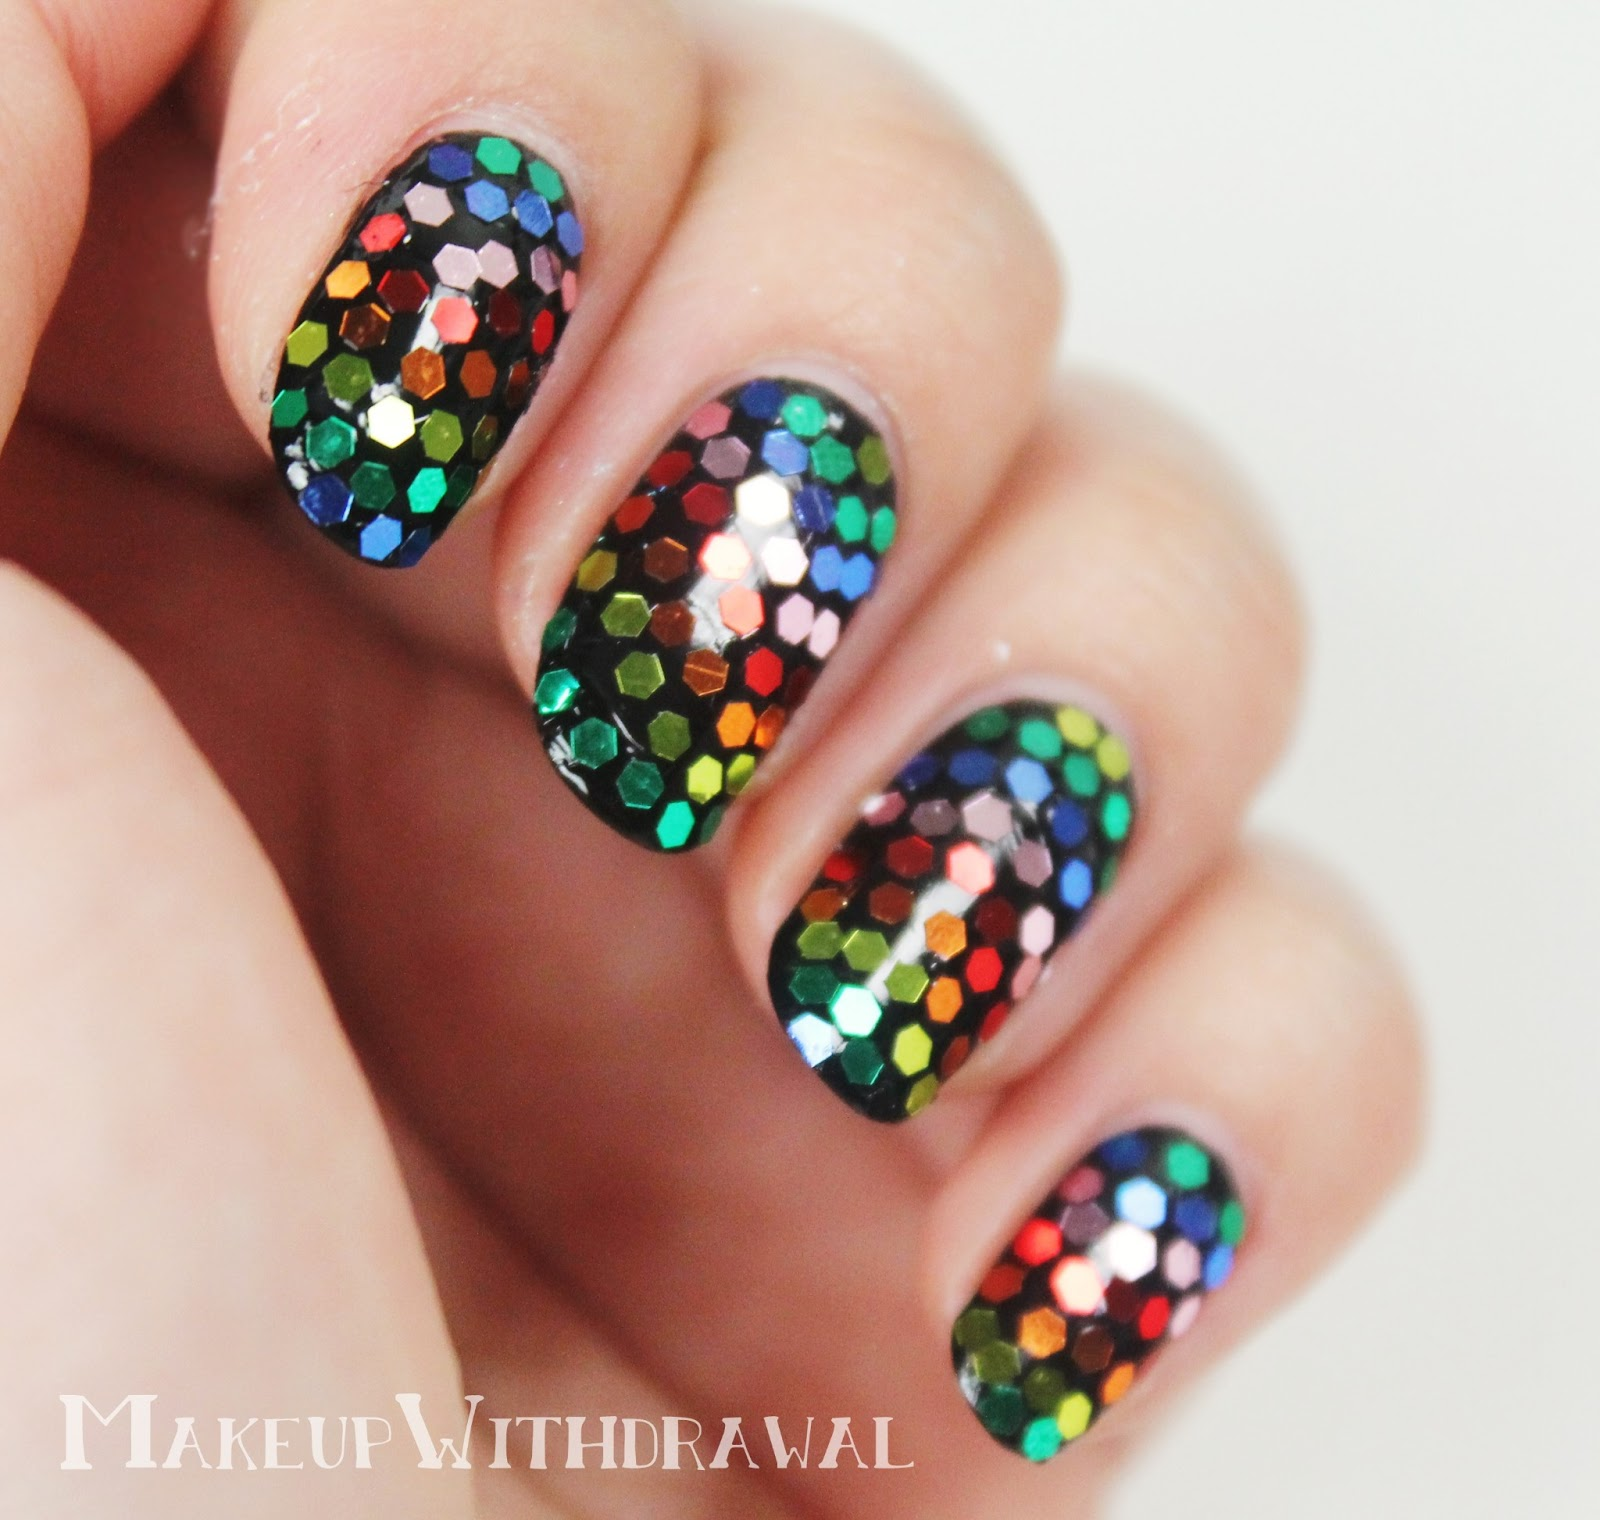 Nails Art Engrossing Nail Art Games For Girl Free Online: 31 Day Nail Challenge V2: Rainbow Nails